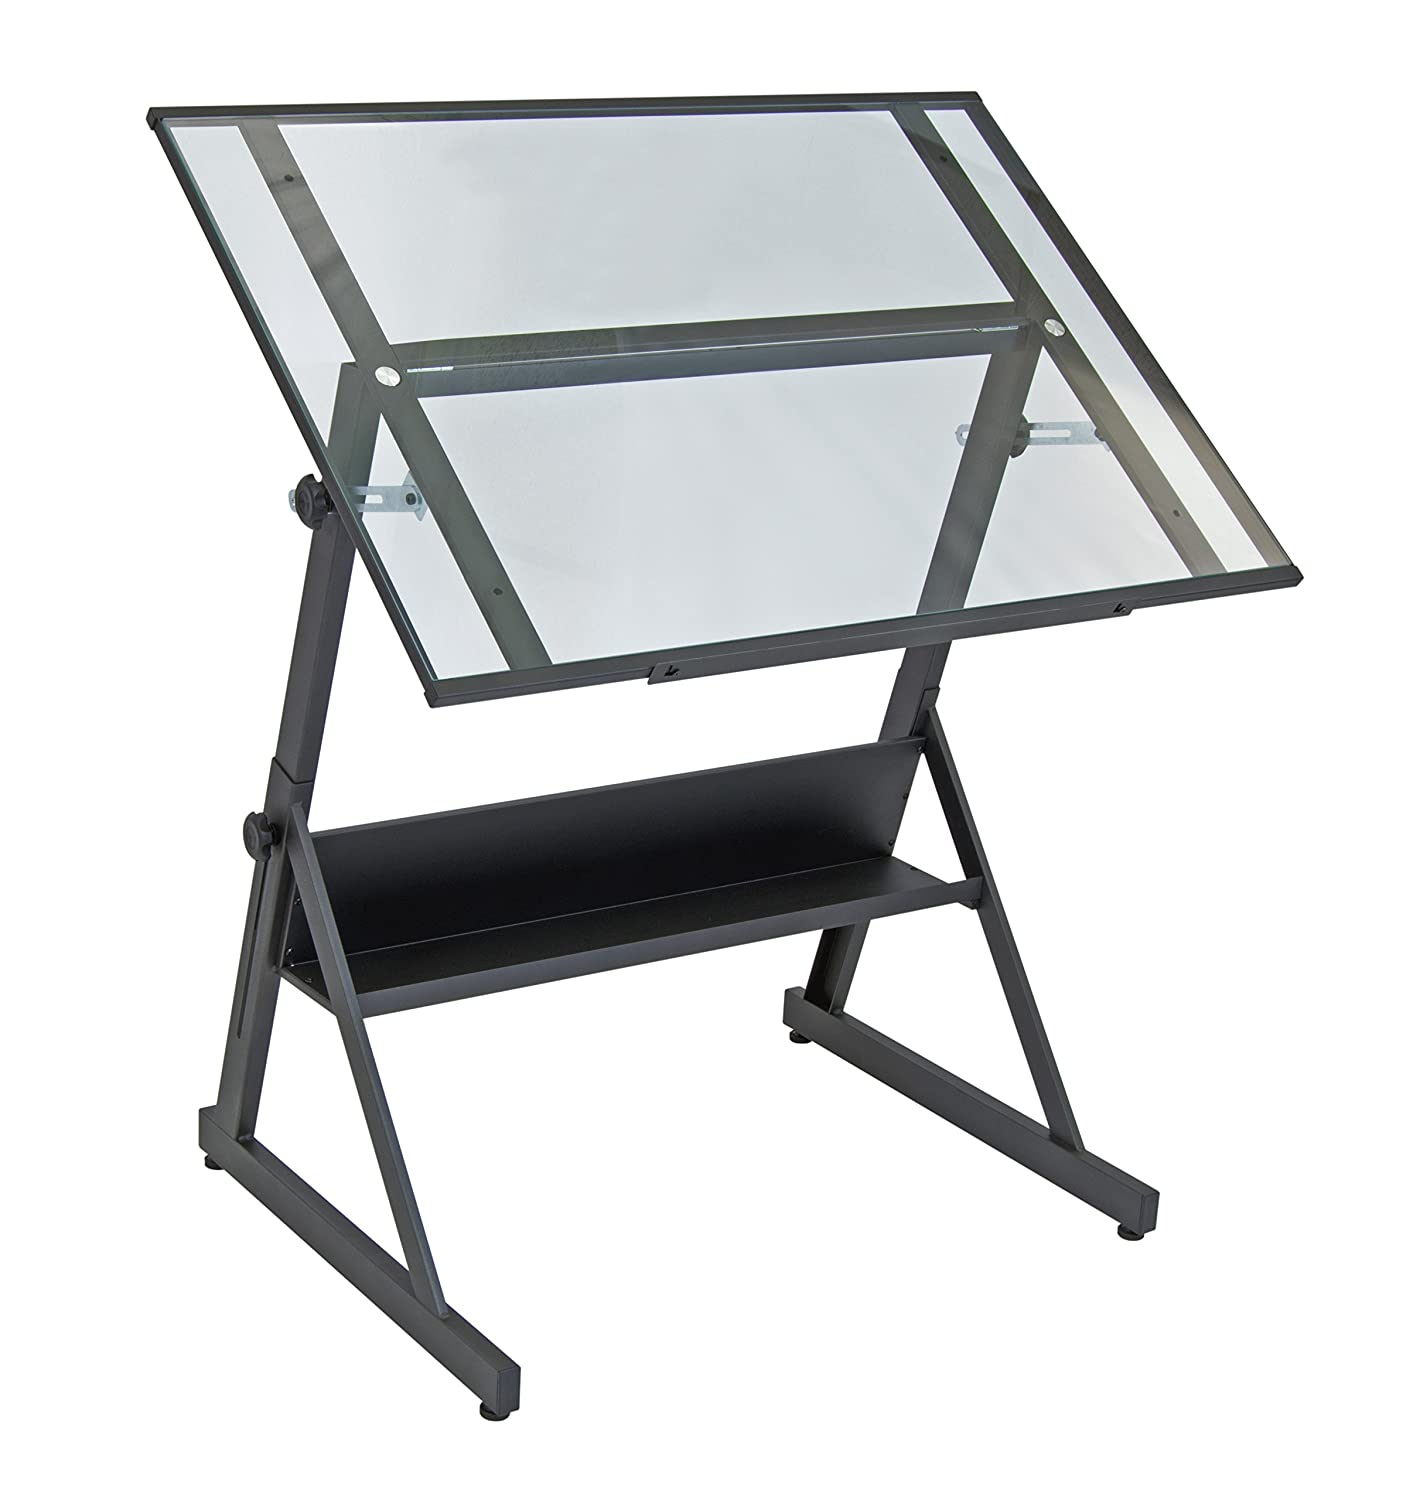 Marvelous Amazon.com: Studio Designs 13346 Solano Adjustable Height Drafting Table,  Charcoal/Clear Glass: Kitchen U0026 Dining